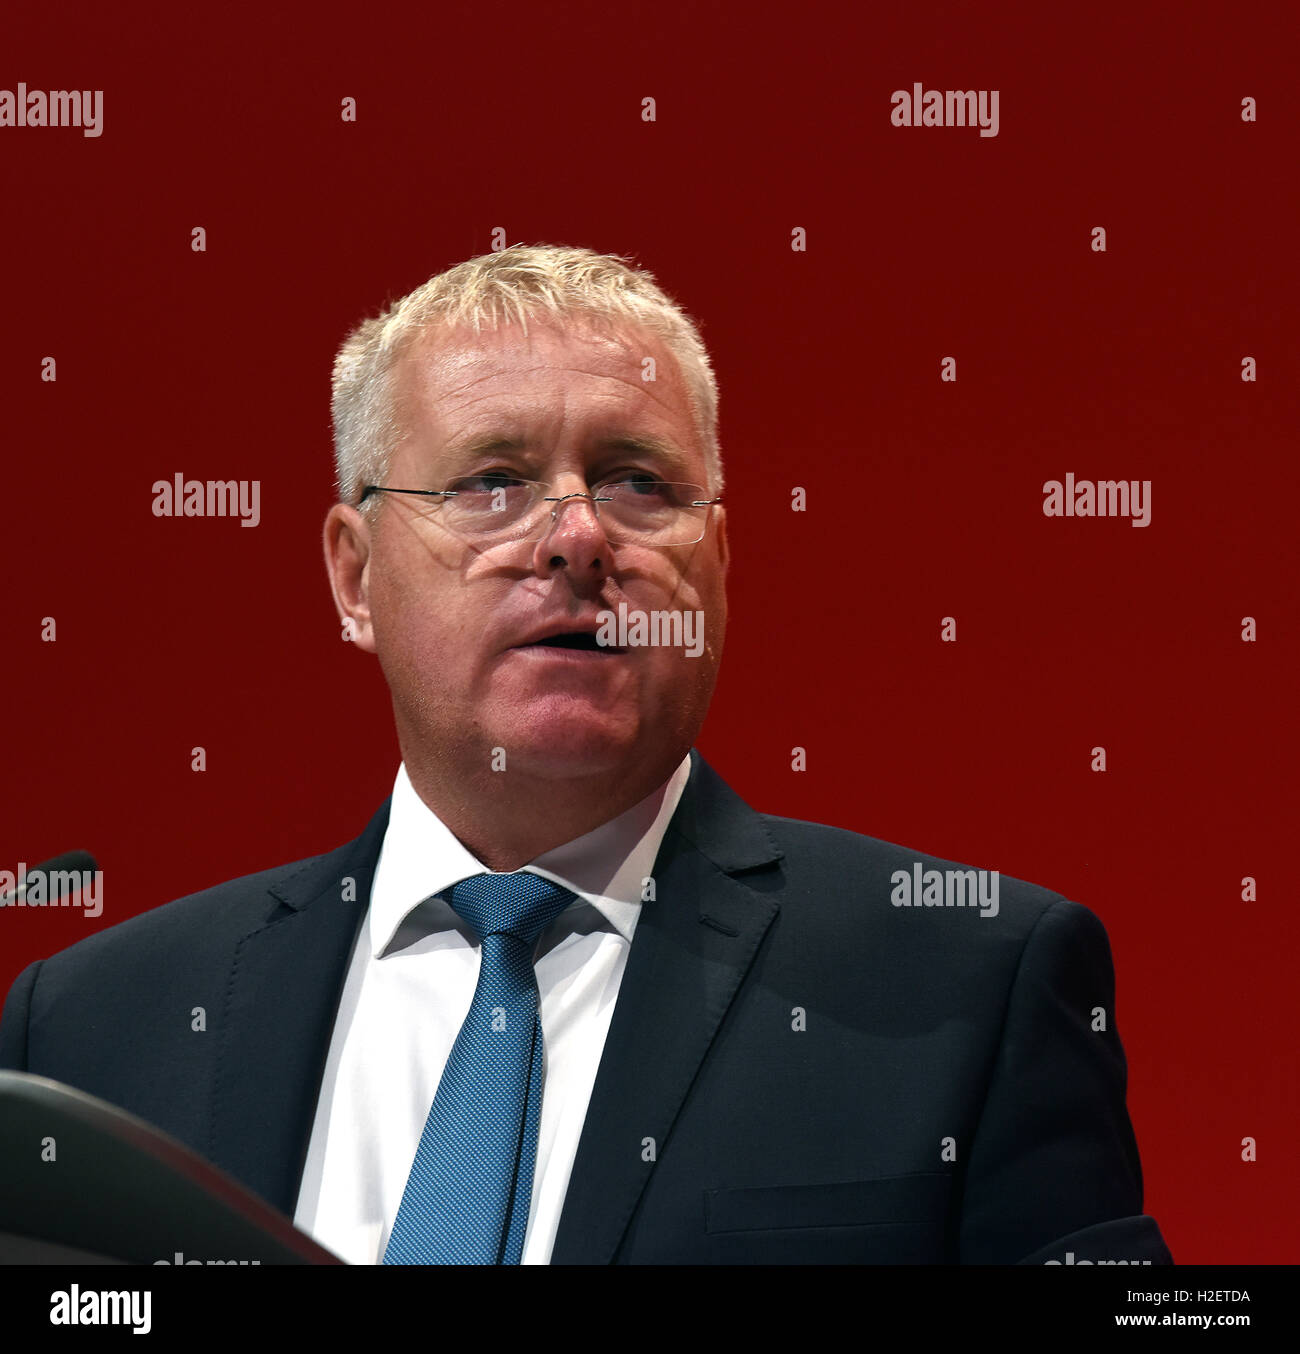 Ian Lavery MP Shadow Minister for Trade Unions and Civil Society Speaking at the Labour Confernce Liverpool 2016 - Stock Image